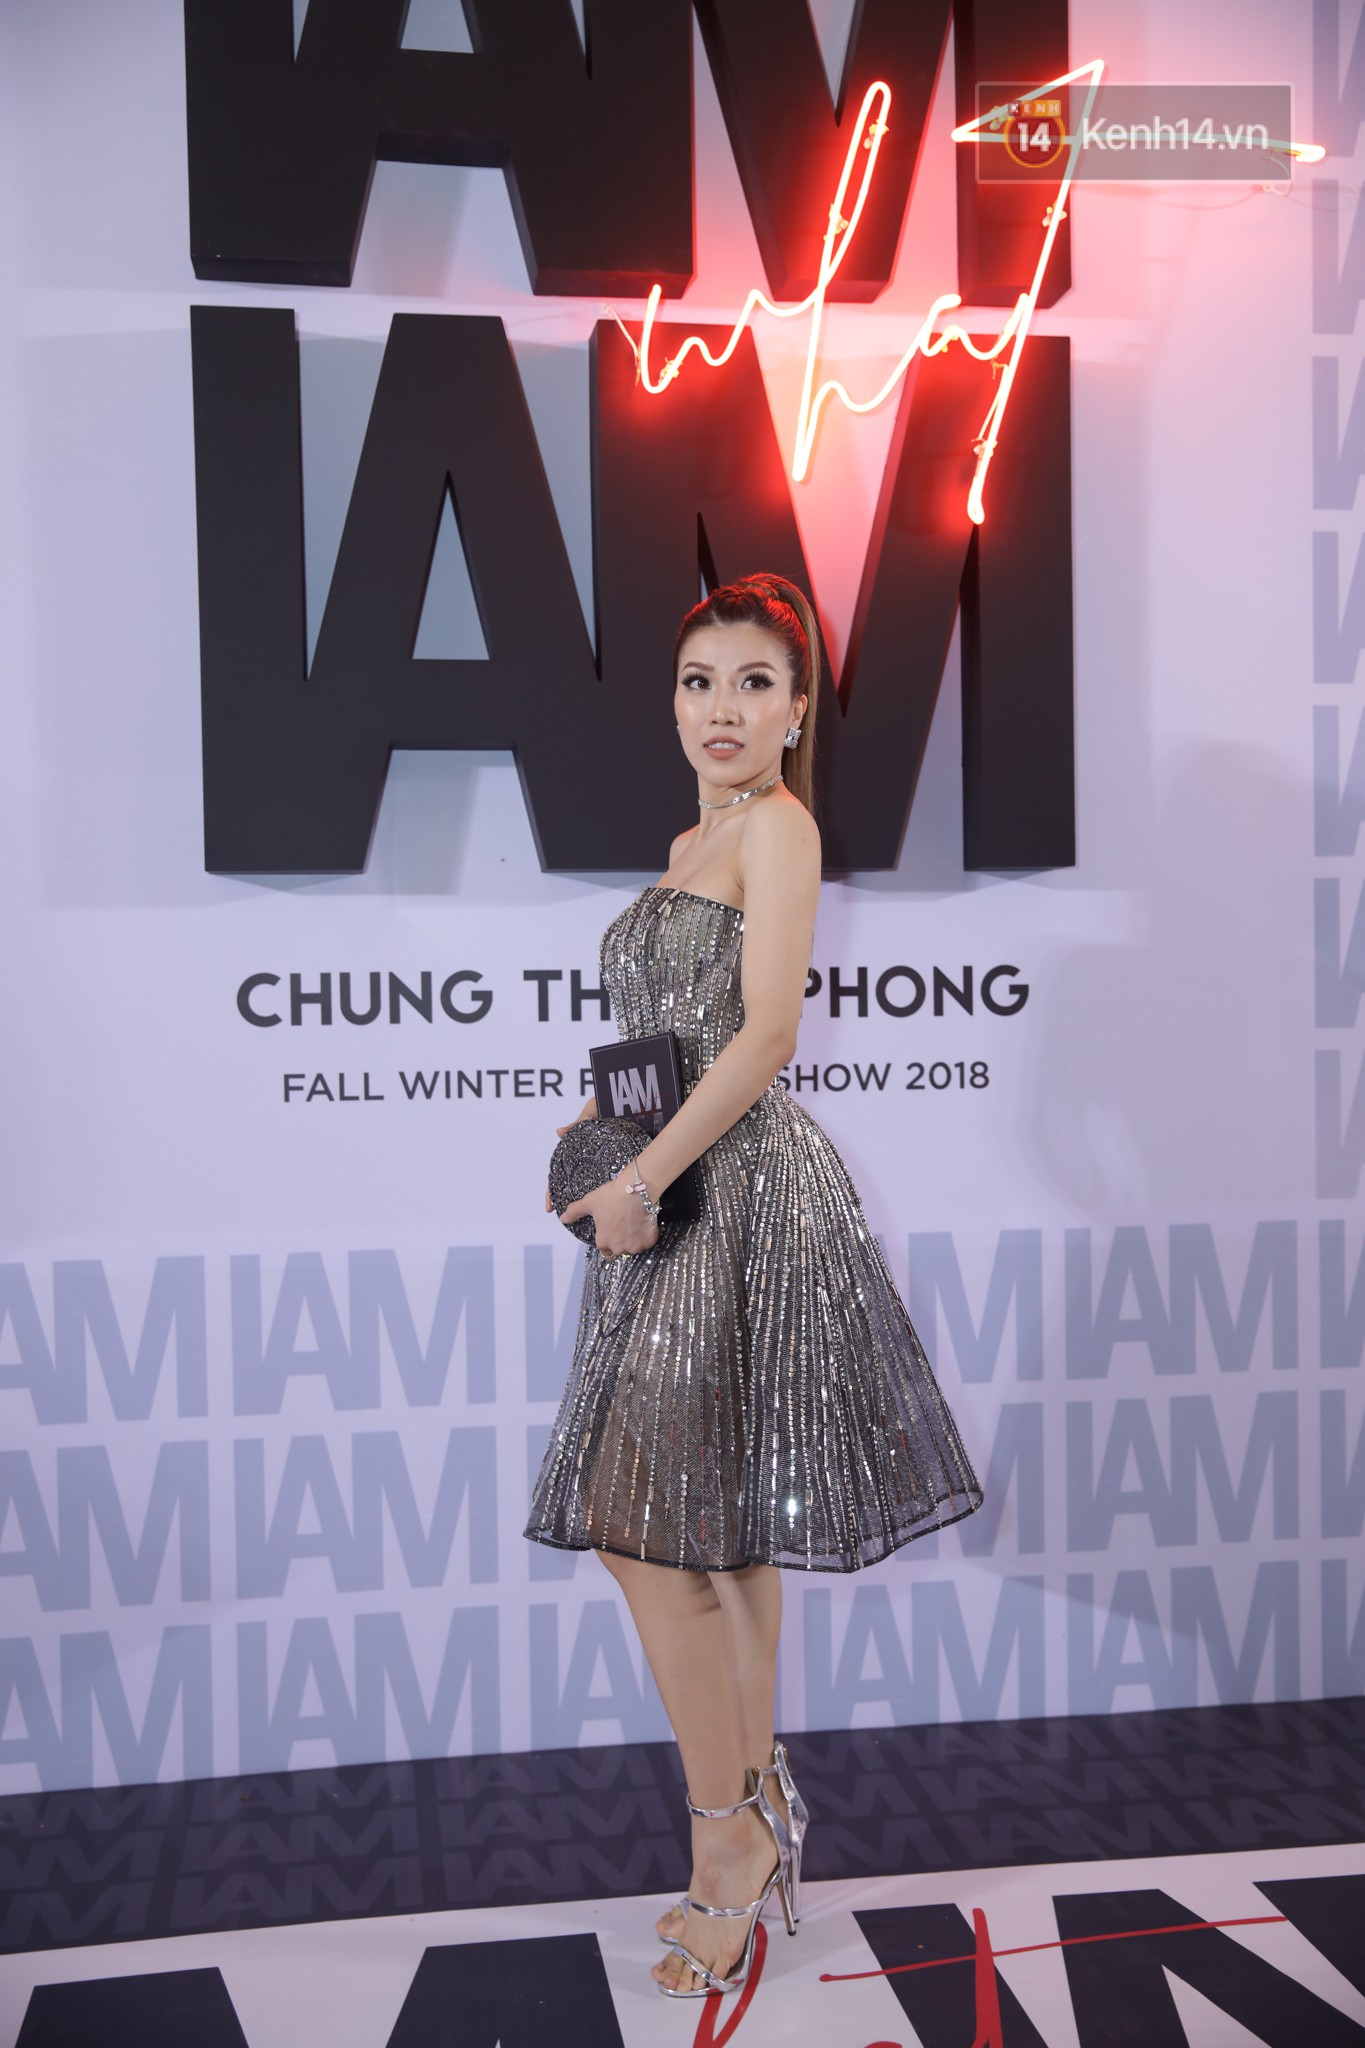 The red carpet Chung Thanh Phong show: It was able to test strange styles, as Quỳnh Anh Shyn caught birds with rain - Photo 34.